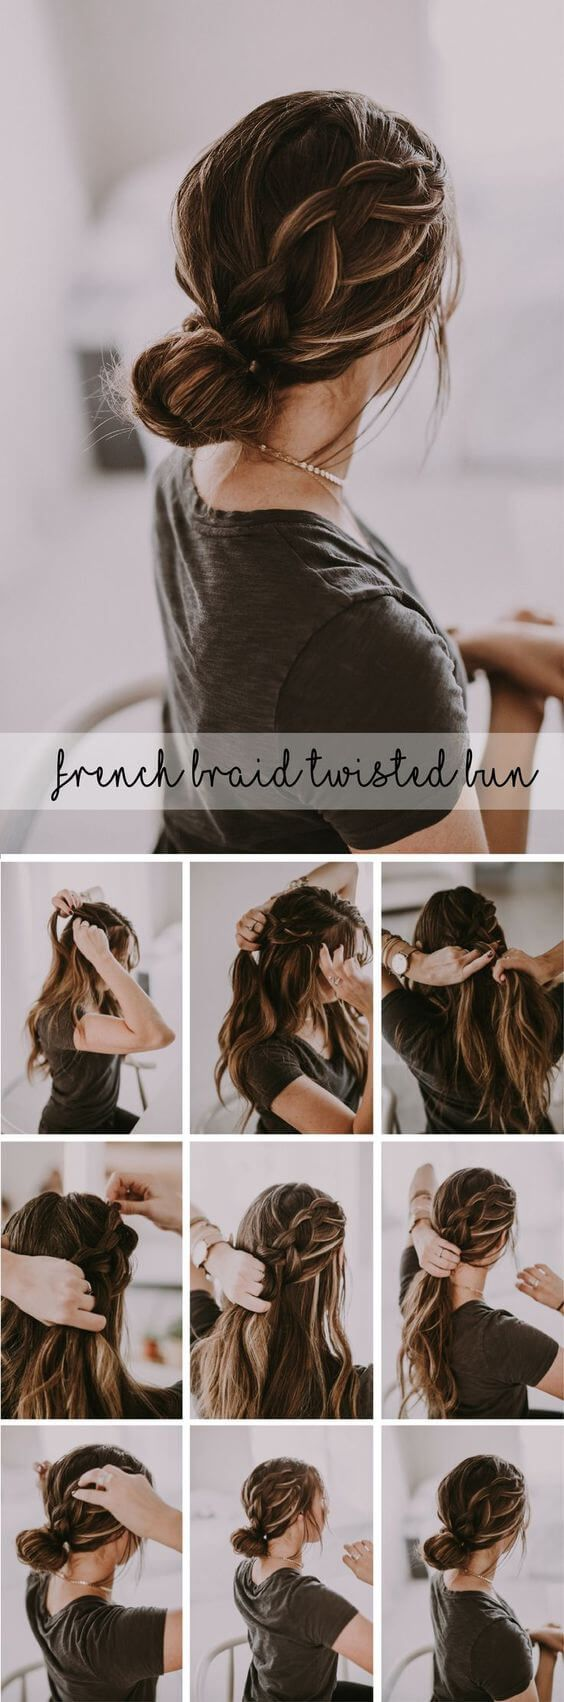 33 Most Popular Step By Step Hairstyle Tutorials Fashion Beauty